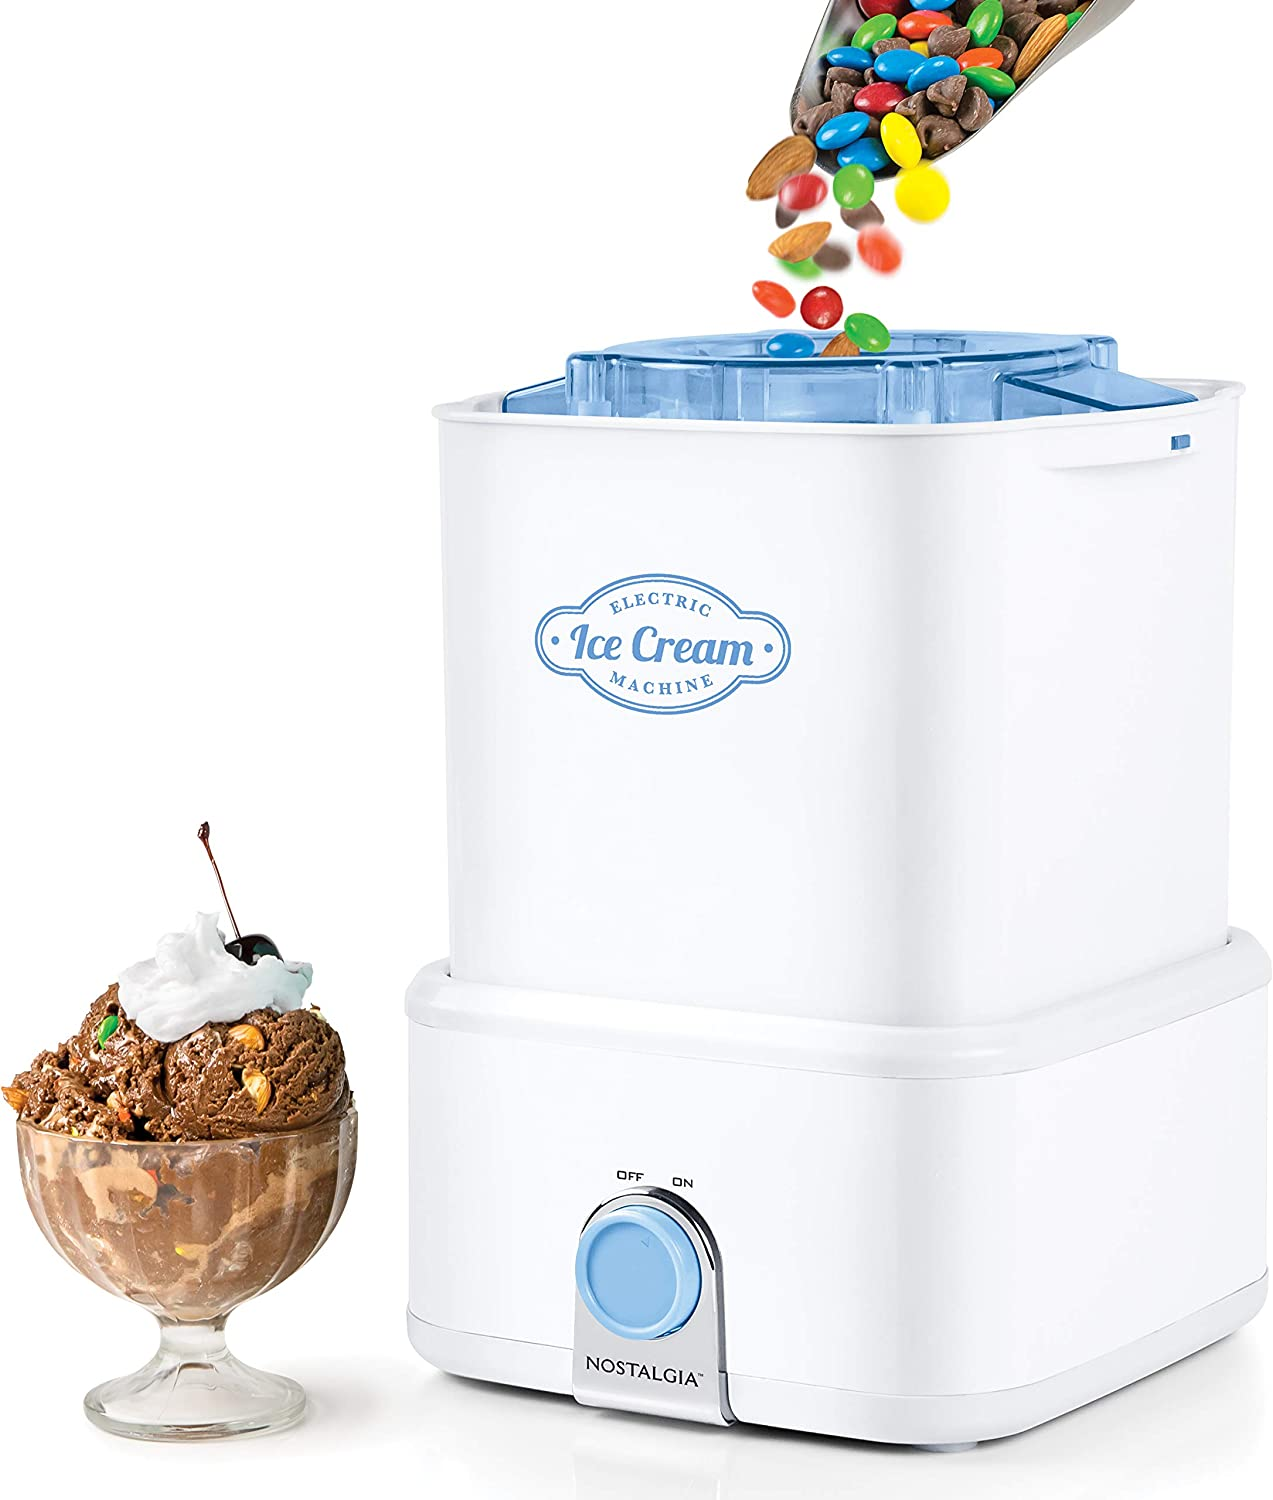 Nostalgia CICM2WB Electric Ice Cream Maker Crusher Makes 2-Quarts in Minutes, Frozen Yogurt, Sorbet, Works with Candy Bars, M&Ms, Chocolate Chips, Nuts & More, White/Blue